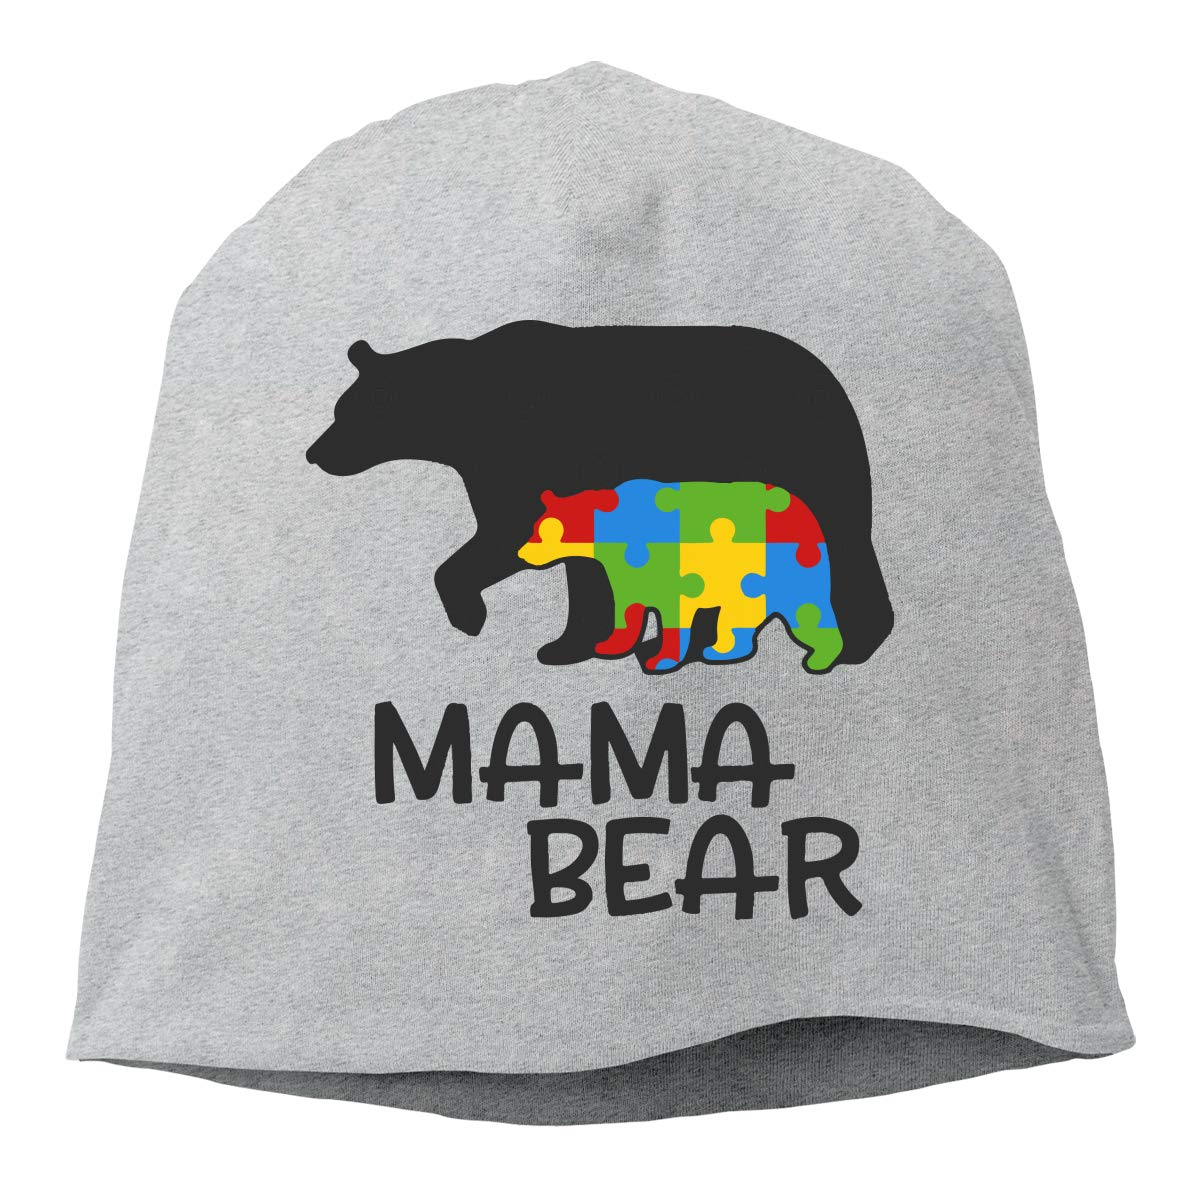 Winter Warm Knit Hat Autism Mama Bear Beanie Skull Cap for Women and Men